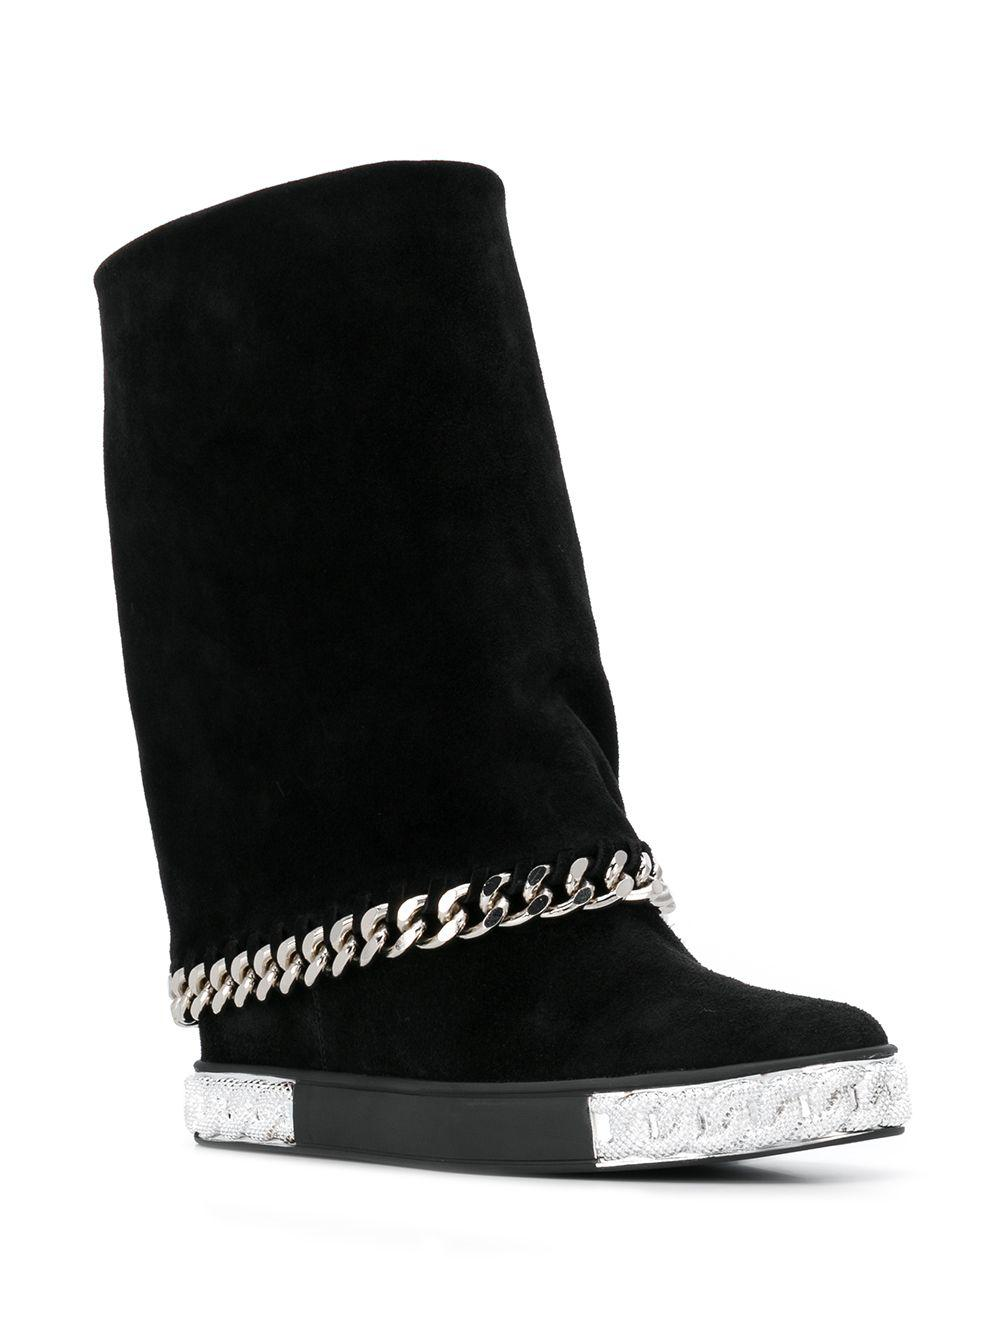 a83eaa02f0b0 Casadei Chain Trimmed Boots in Black - Lyst